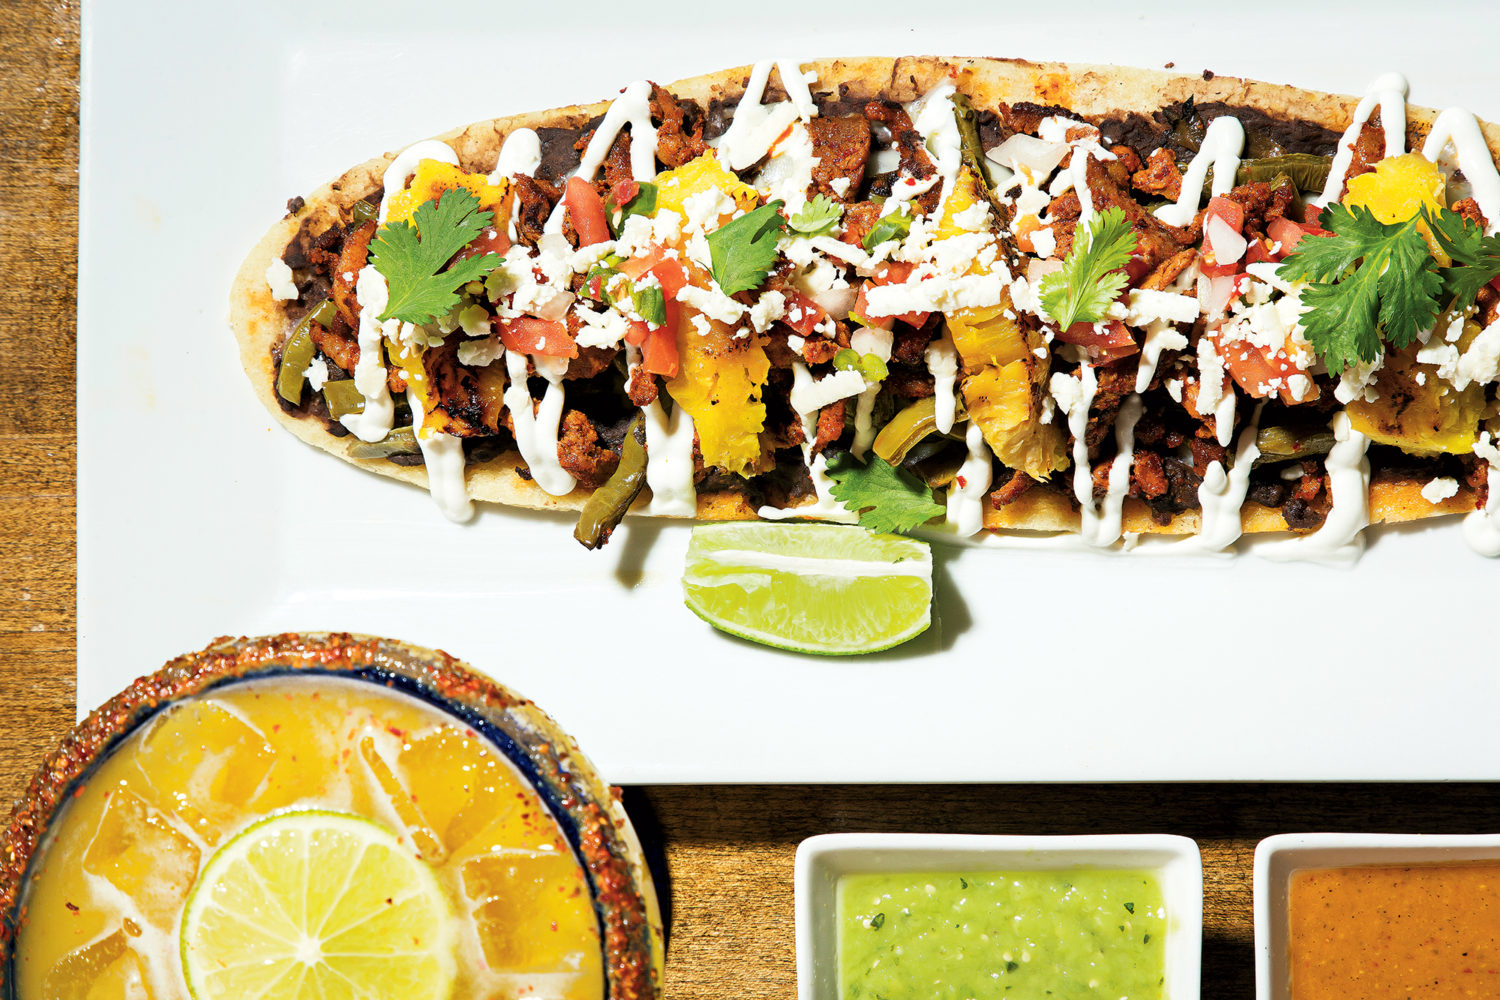 Pork huarache at Mezcalero. Photograph by Scott Suchman.